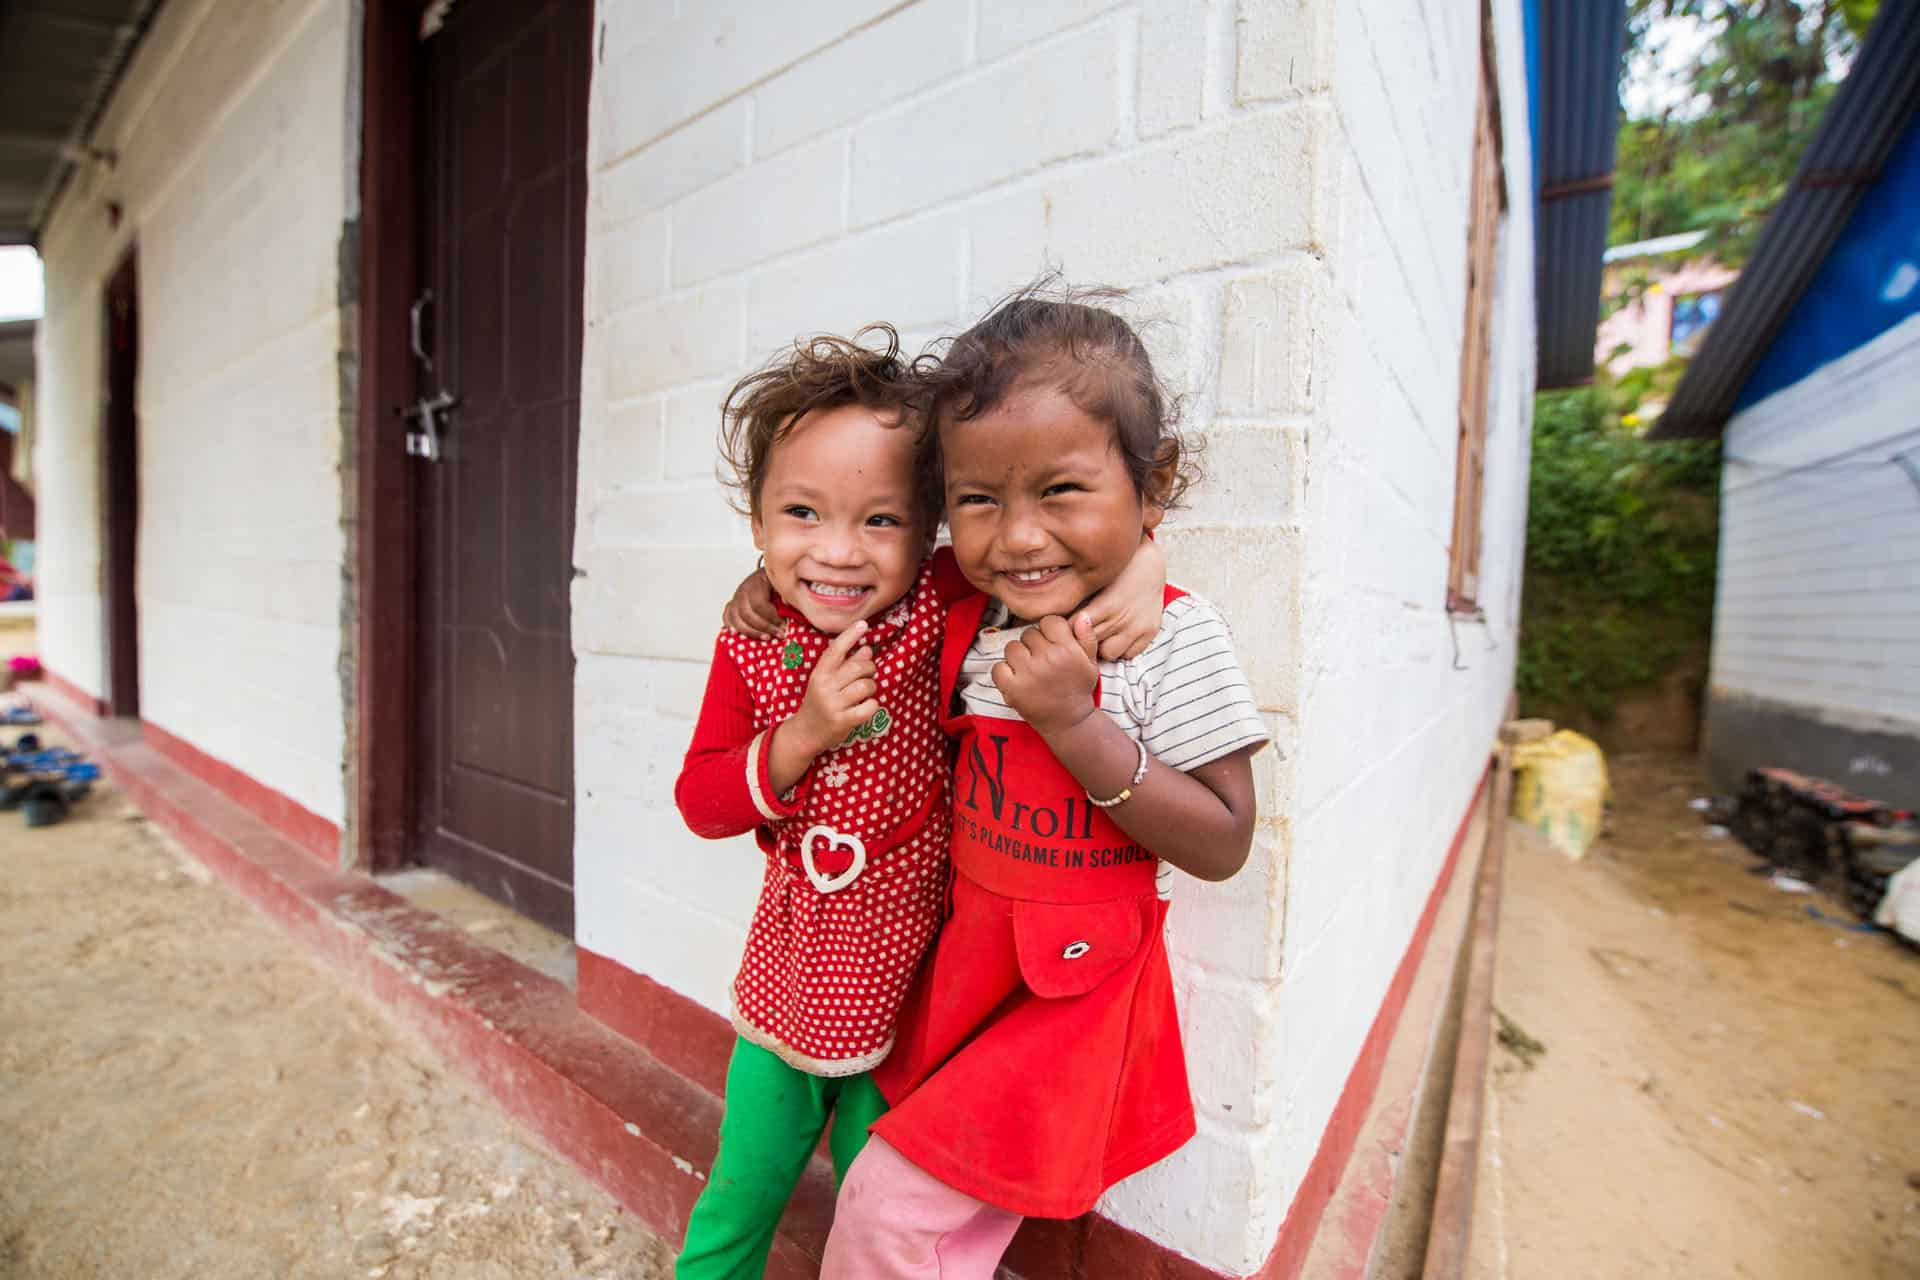 Two children smiling in front of a house